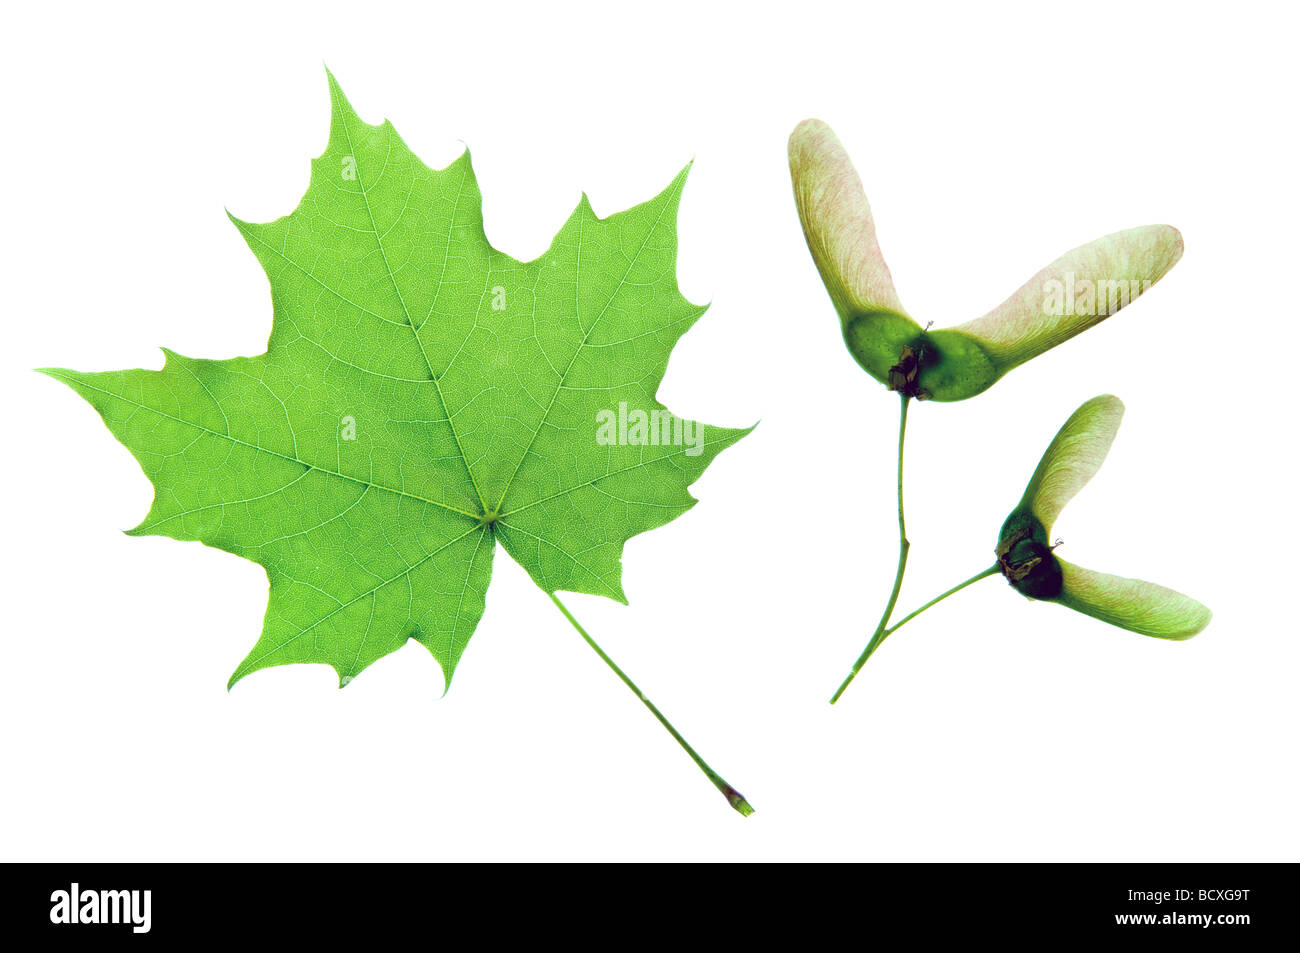 Green maple leaf isolated on white - Stock Image